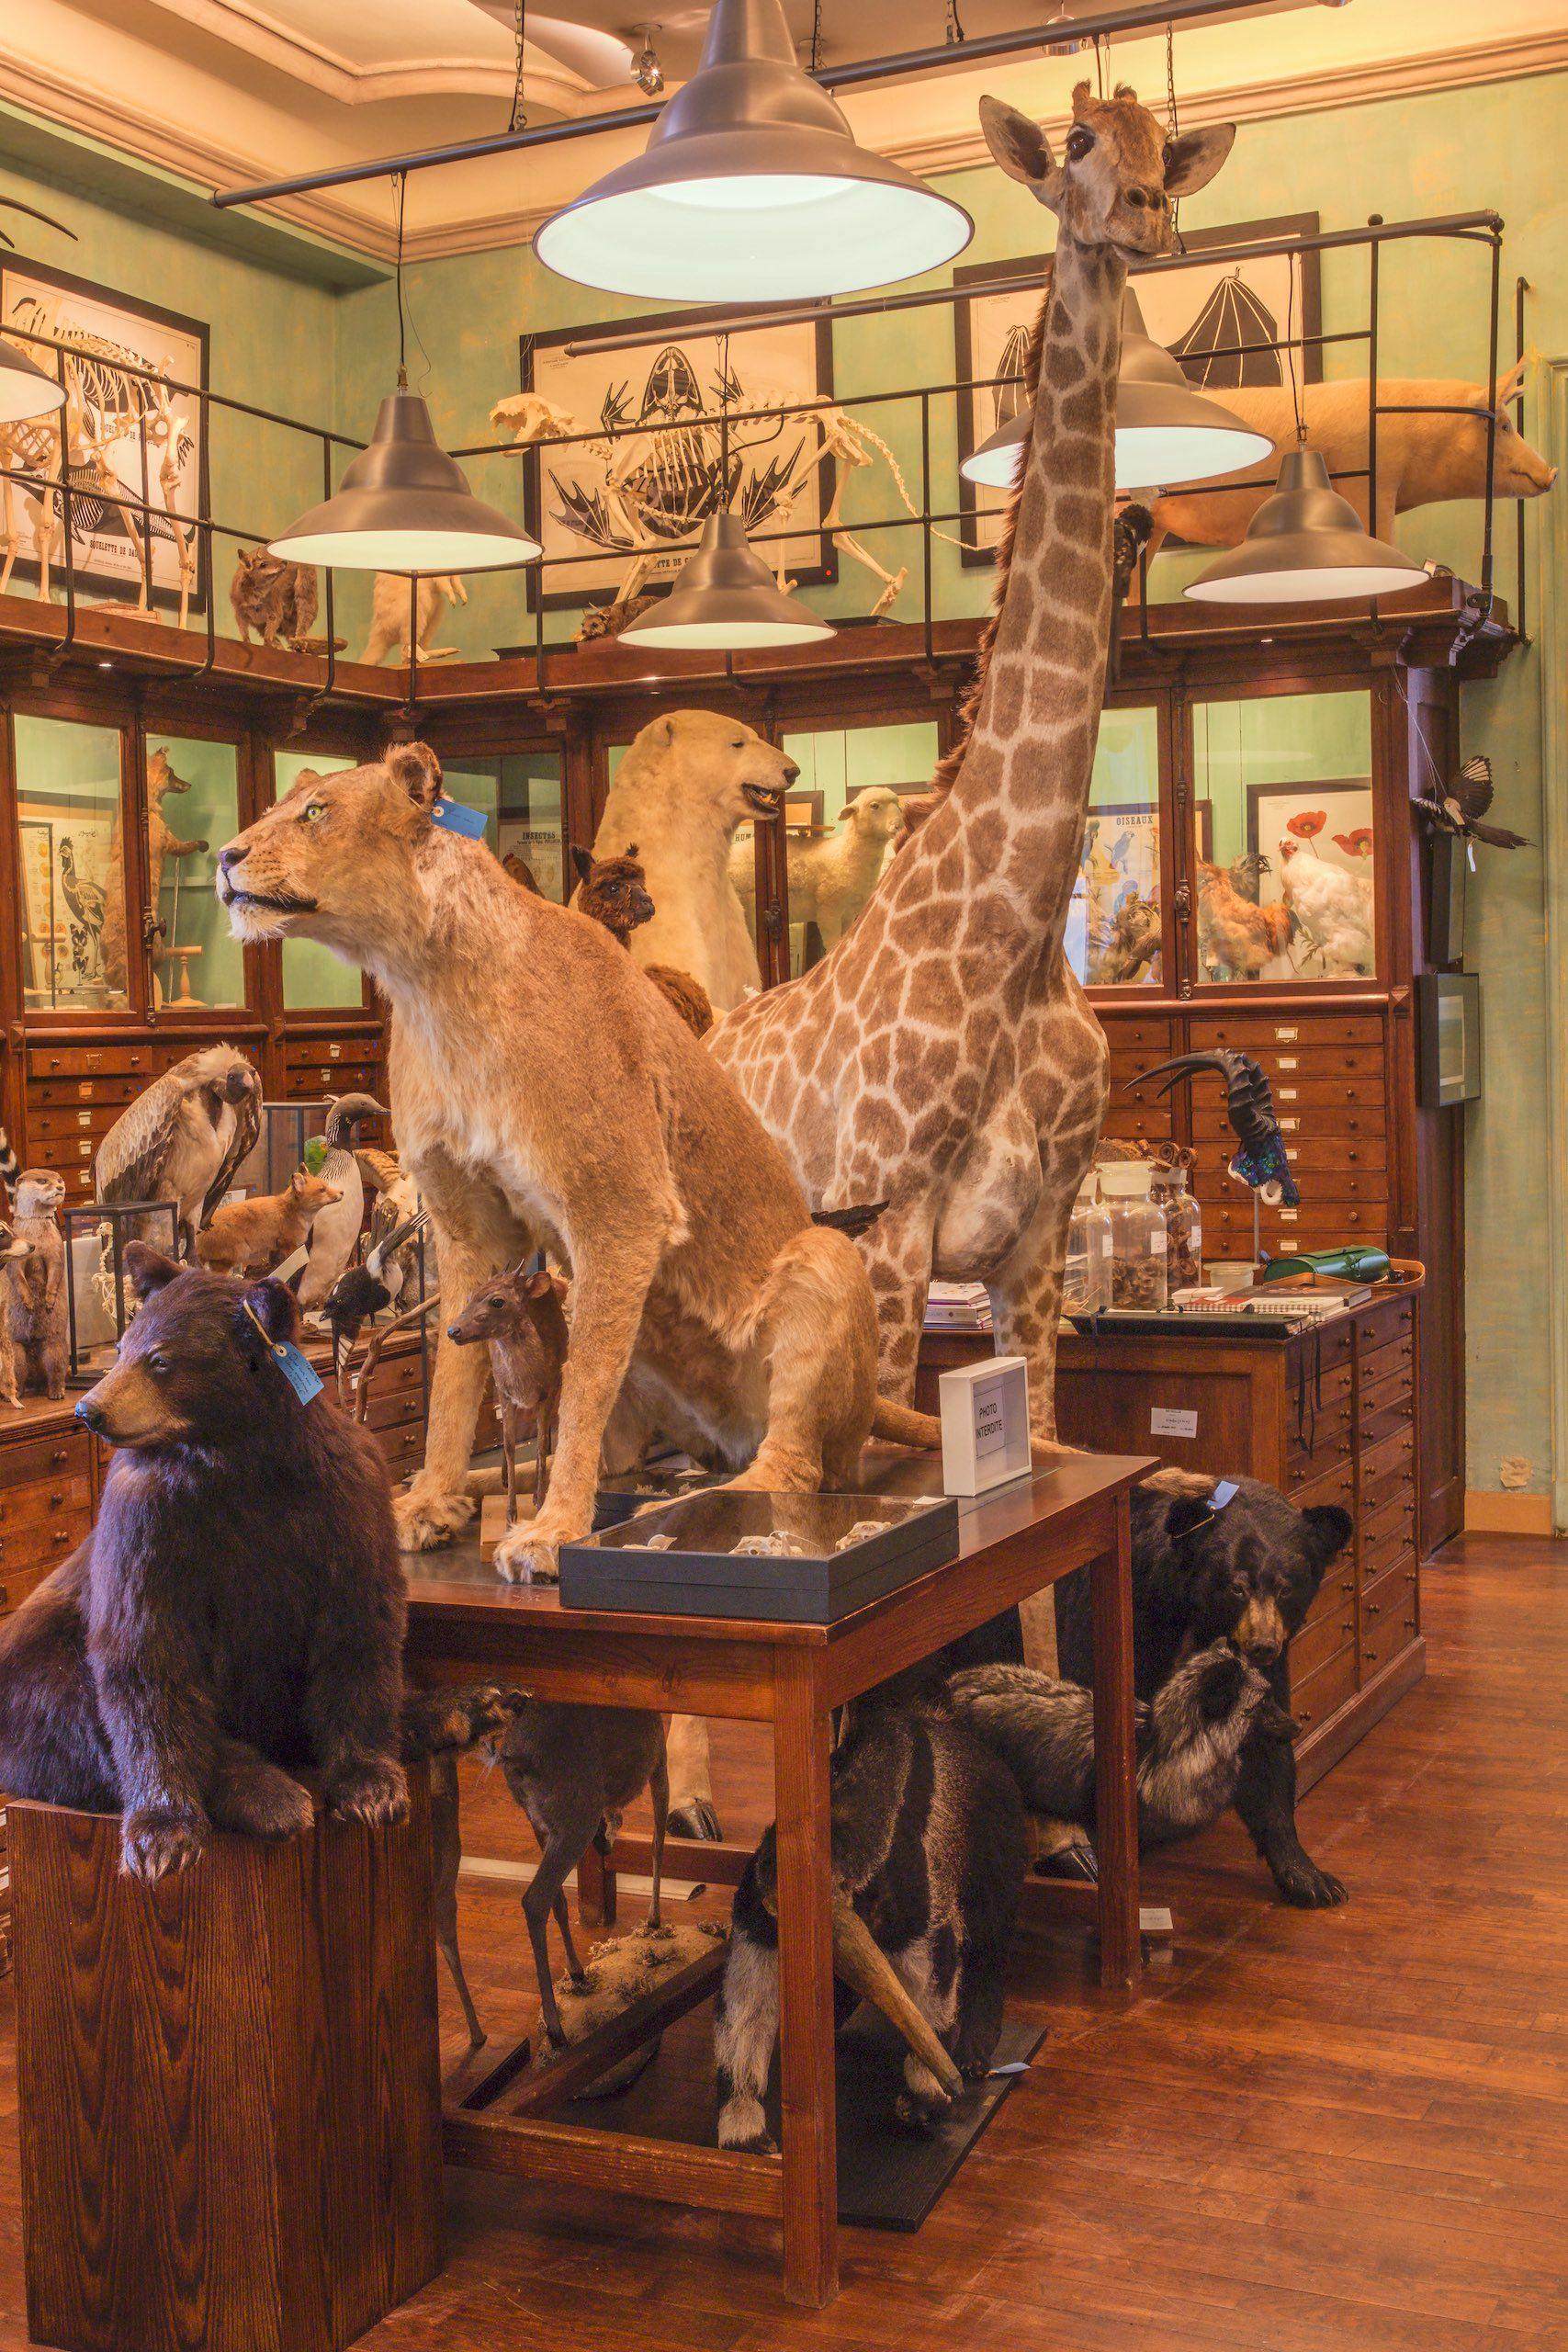 ANIMAL SALON #2